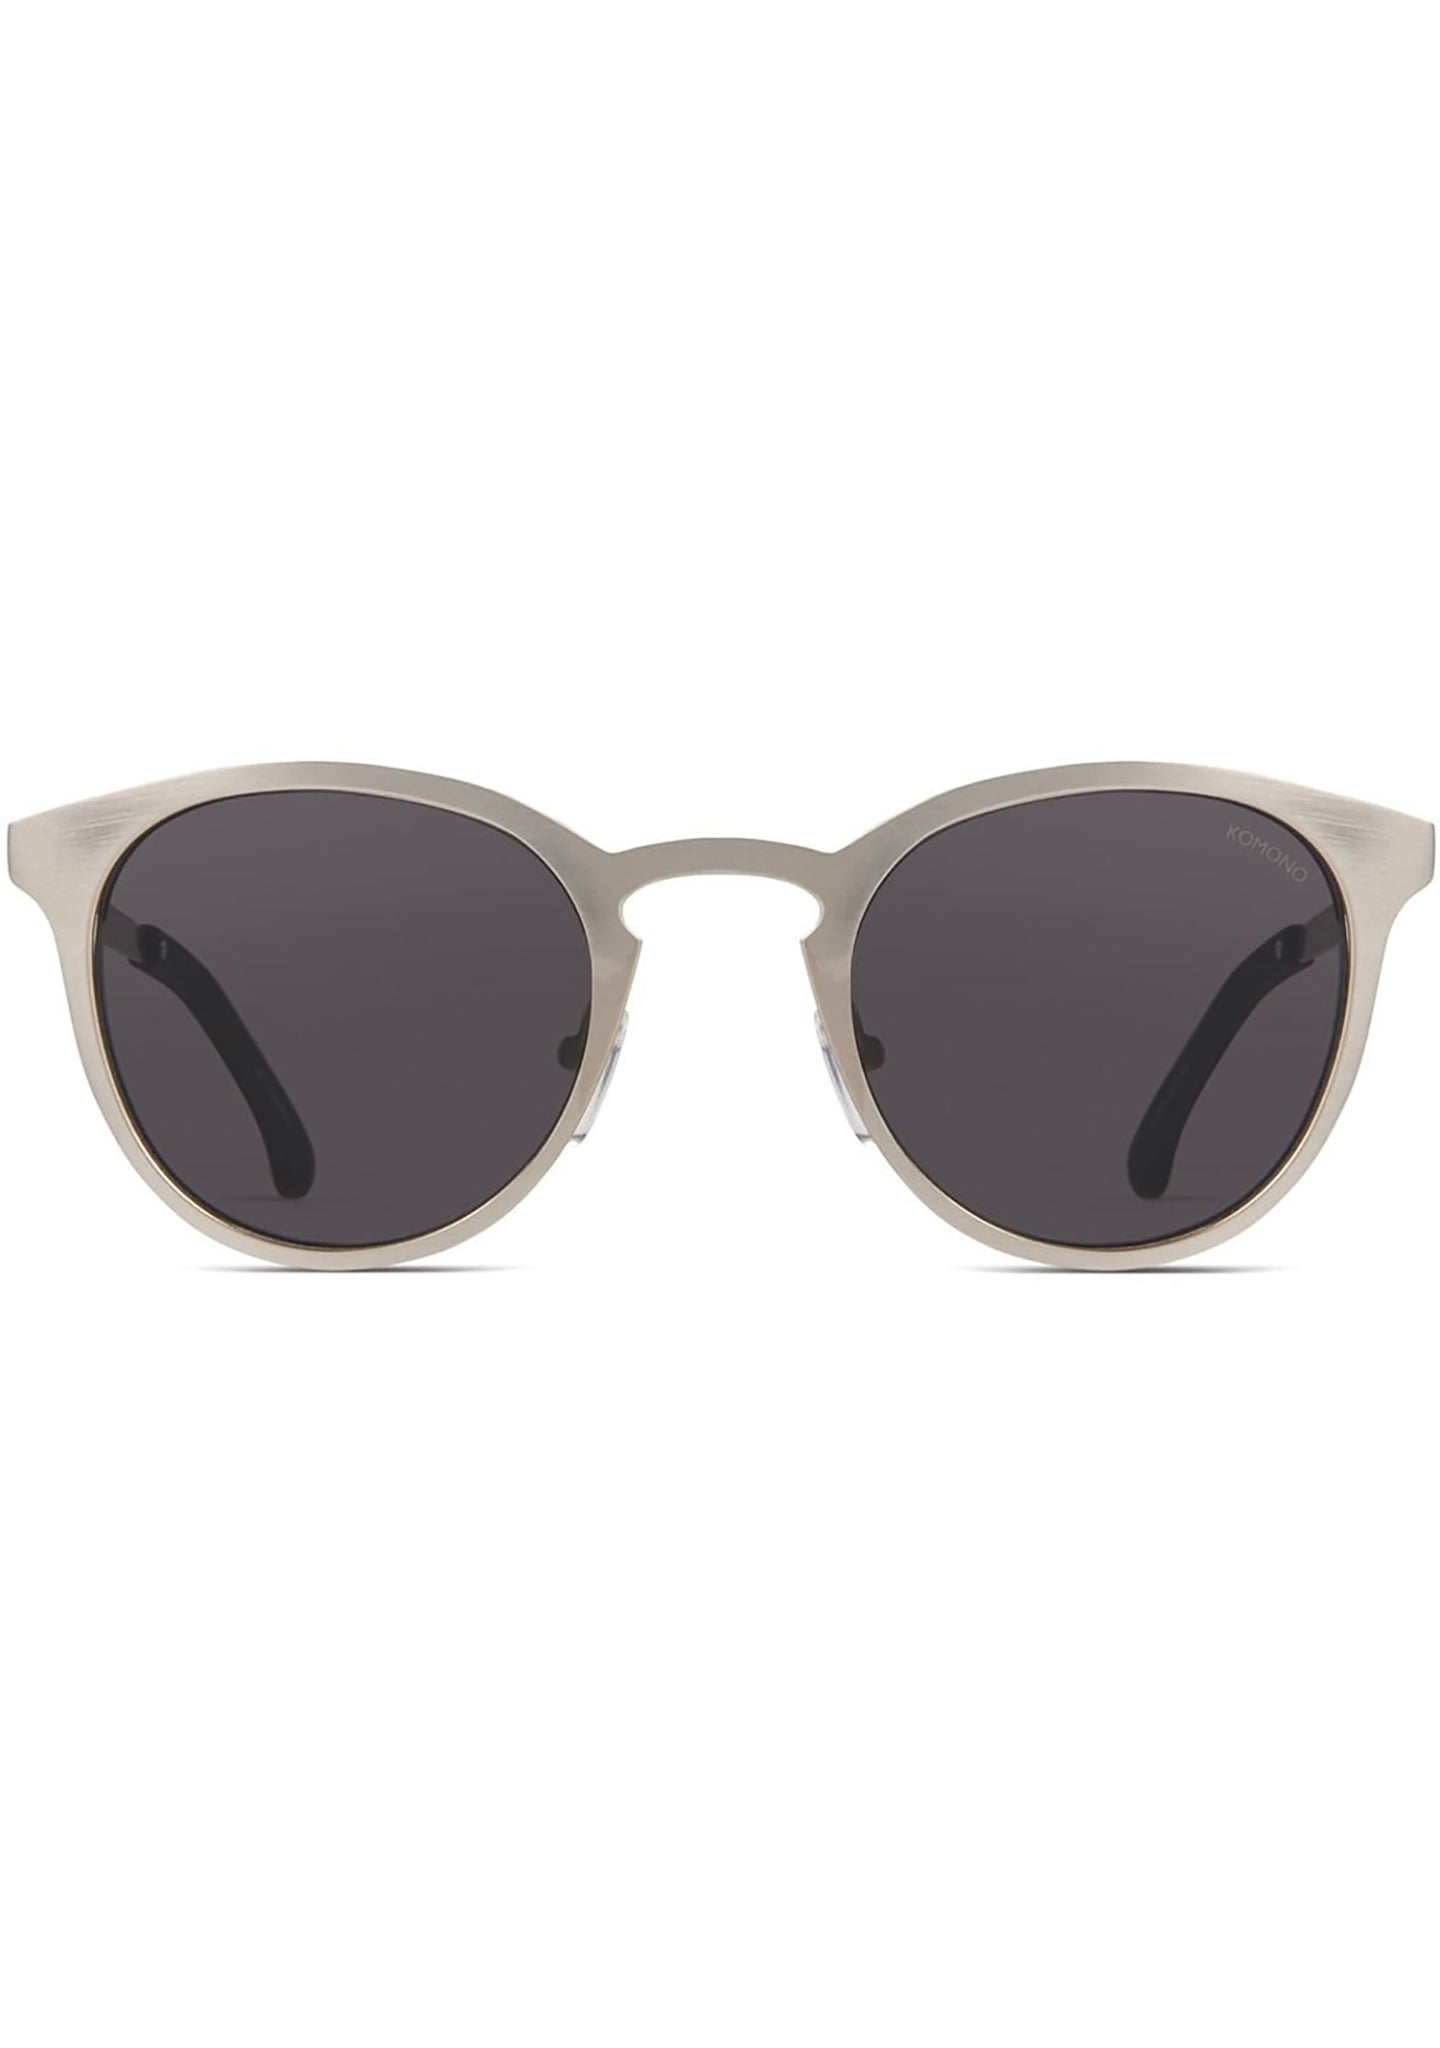 KOMONO Hollis Sunglasses in Silver Boutique